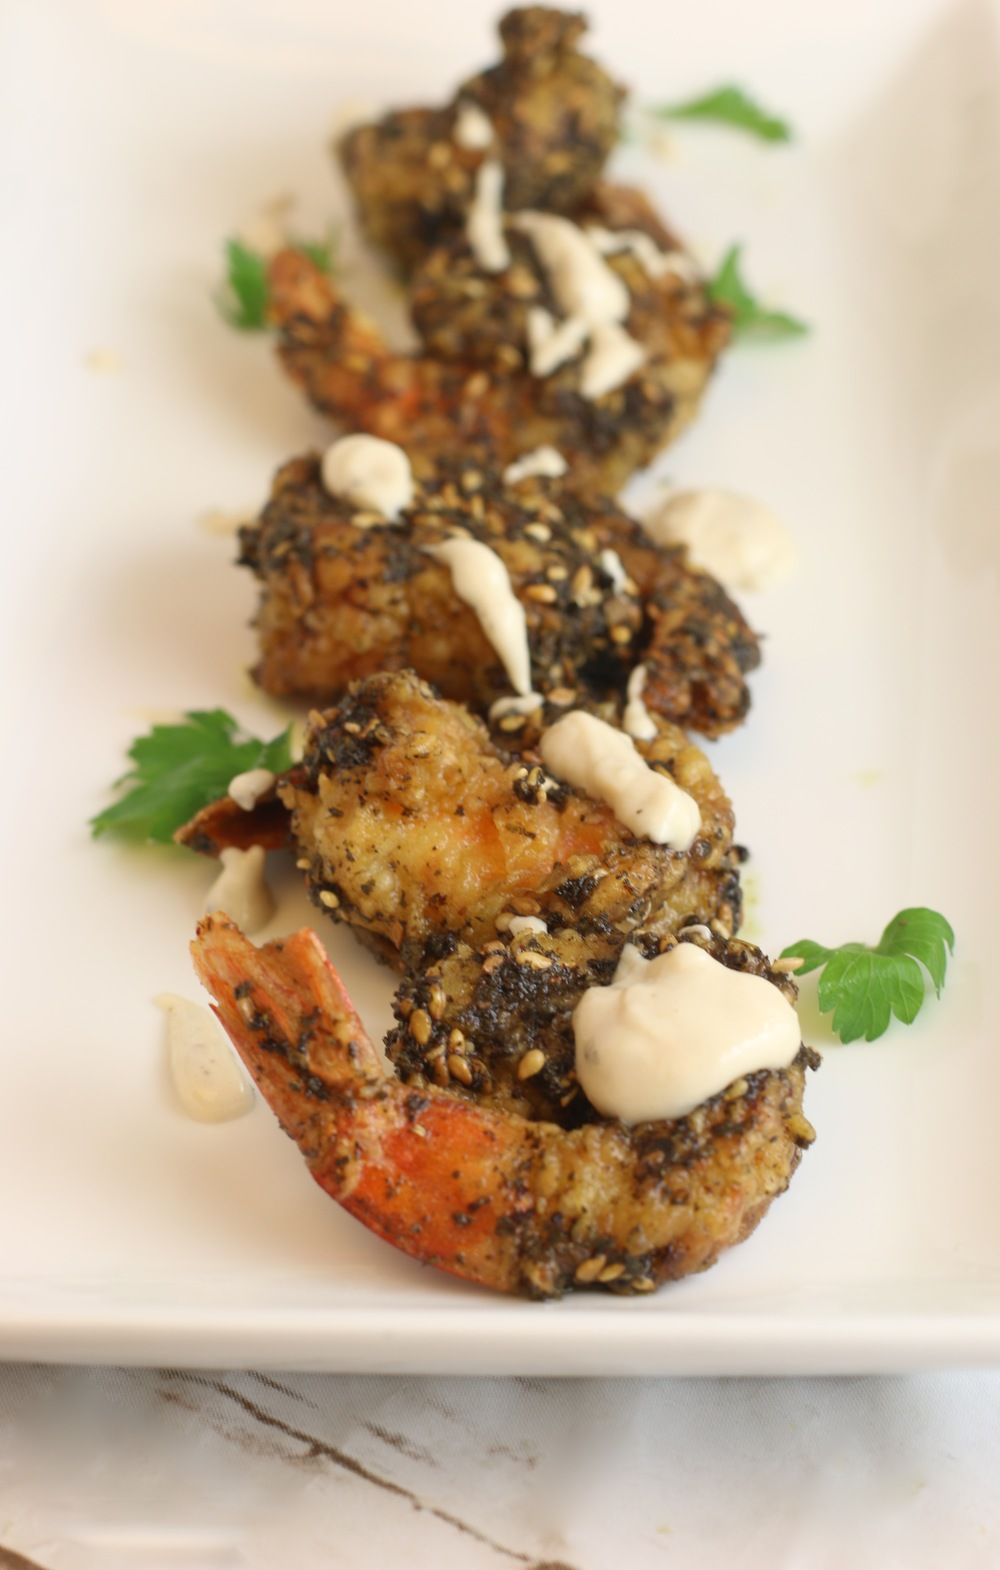 Zaatar crusted shrimp with lemon tahini_6932.jpg